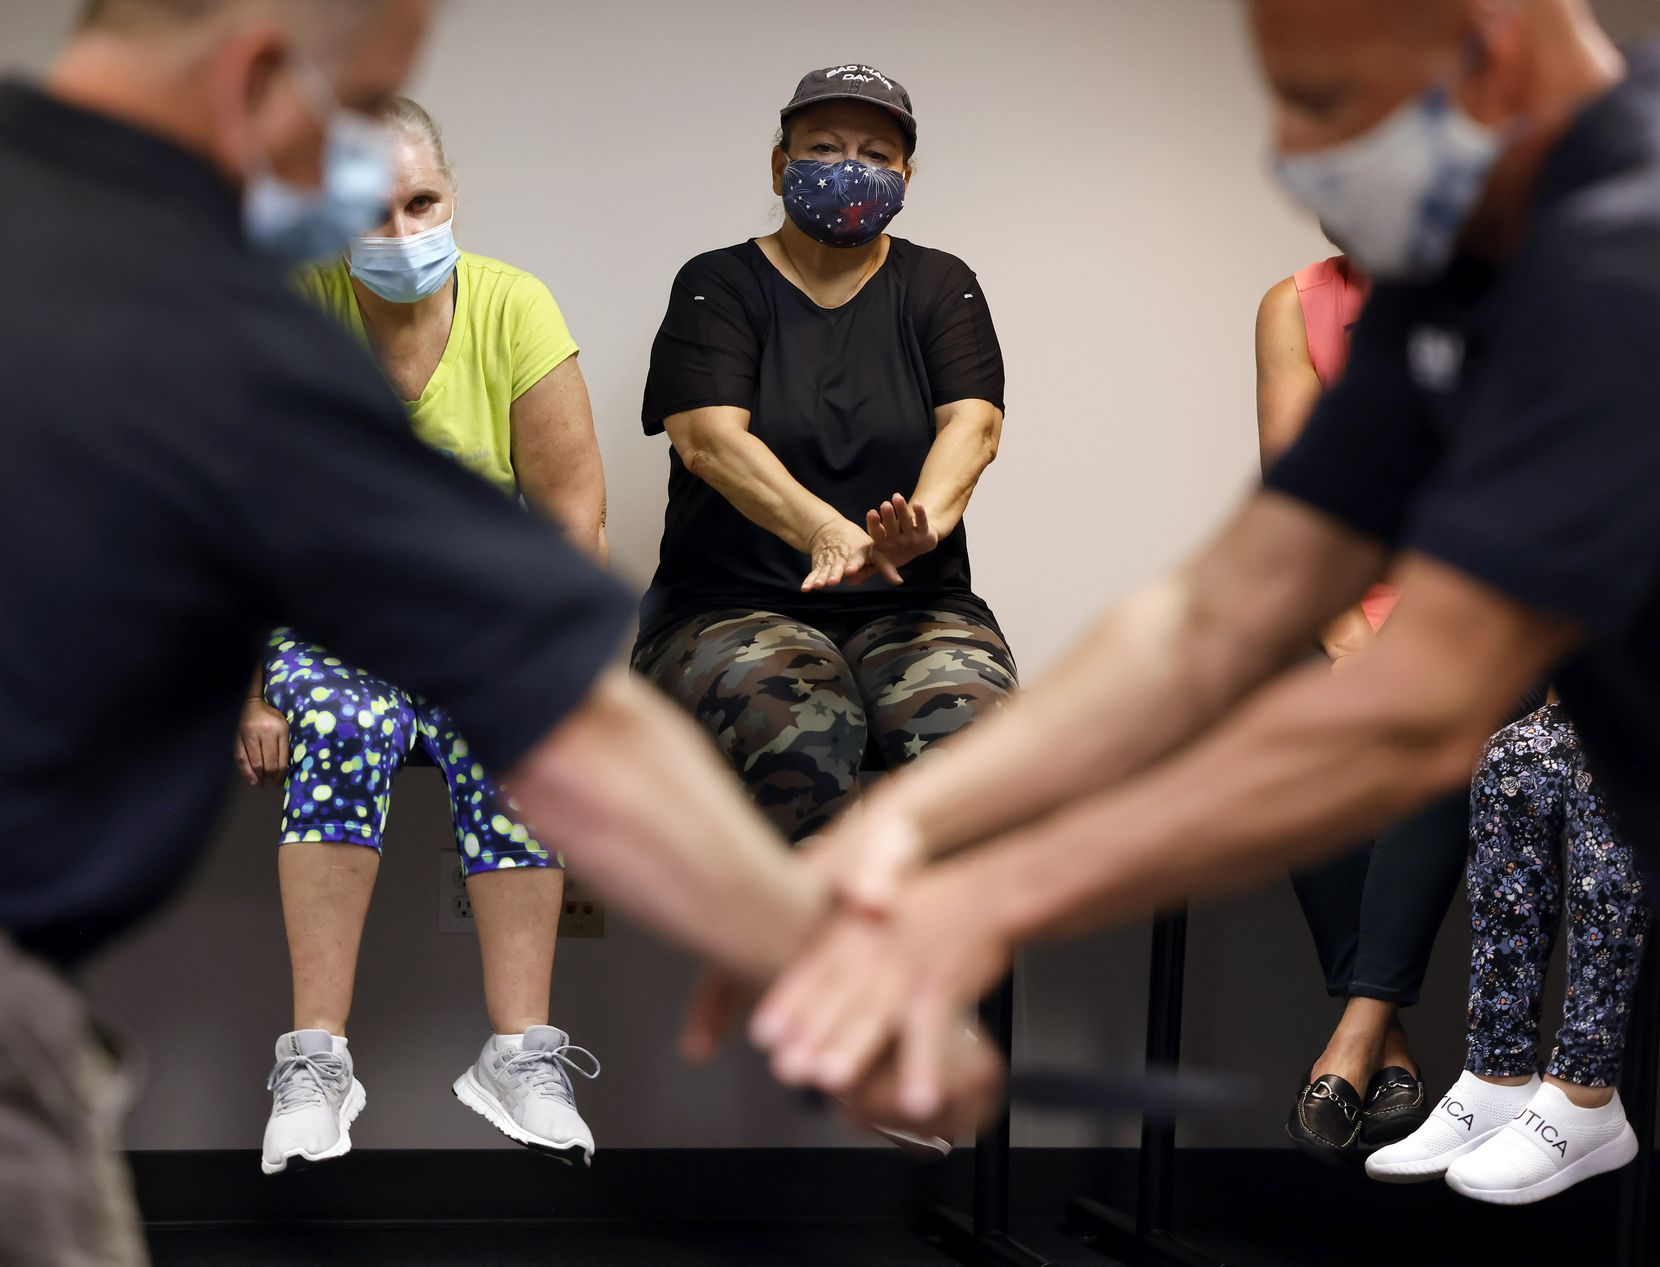 Ameristar Jet Charter flight attendant Lucy Waldenstrom follows along as federal air marshals demonstrate a maneuver during a self-defense training session at the Transportation Security Administration offices in Coppell.